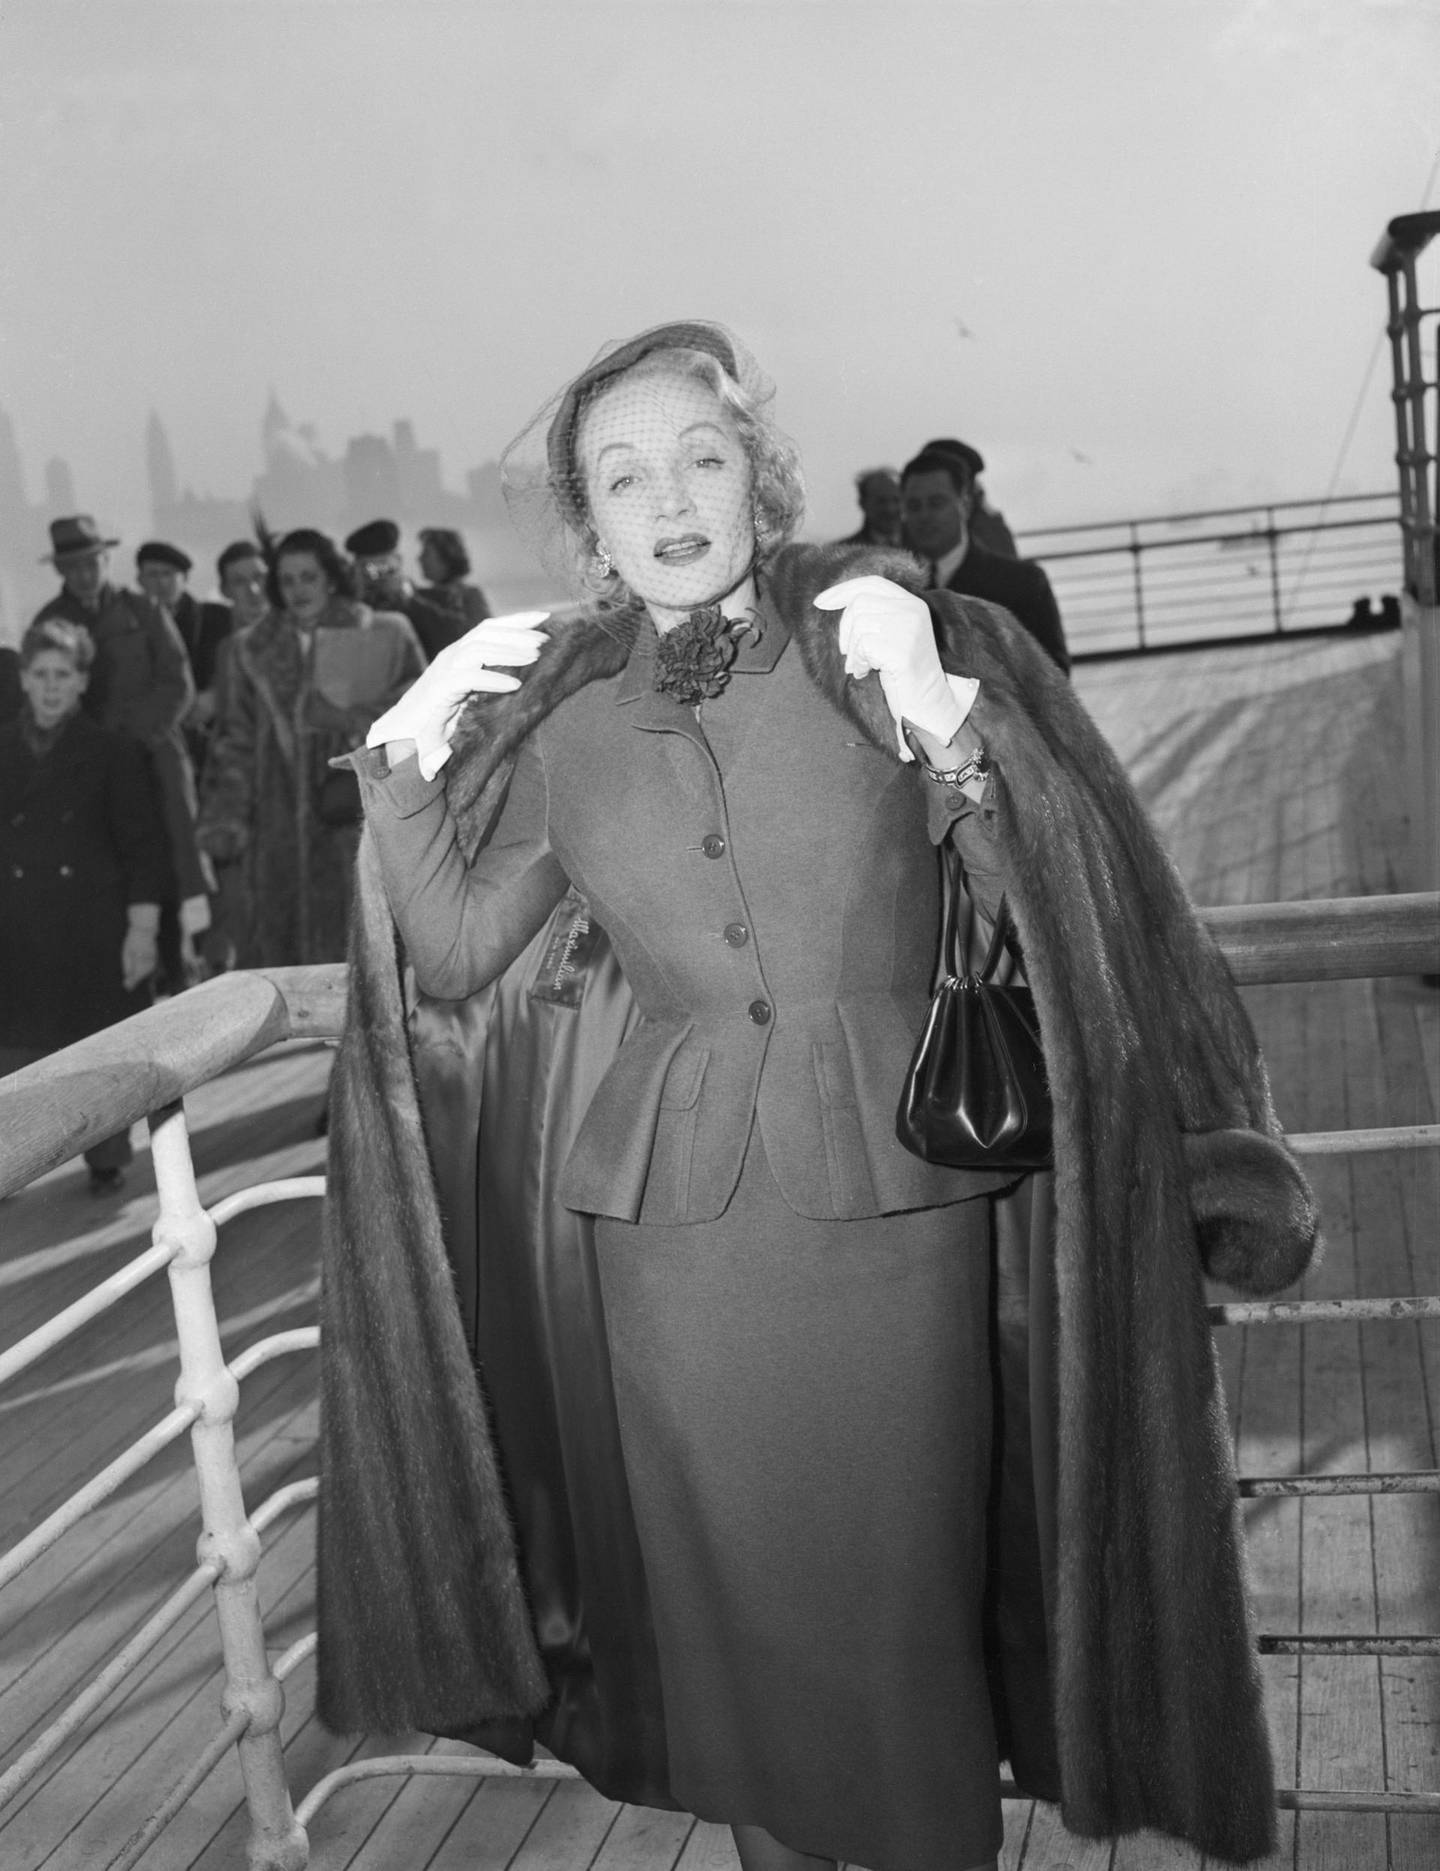 (Original Caption) 12/21/1950-New York, New York- Actress, Marlene Dietrich, unquestionably one of the most glamourous grandmothers in the world, shows herself to be little the worse for wear after her arrival at New York aboard the Queen Elizabeth. Getty ImagesMarlene Dietrich wearing day suit by Christian Dior onboard the Queen Elizabeth arriving in New York, 21 December 1950. Getty Images